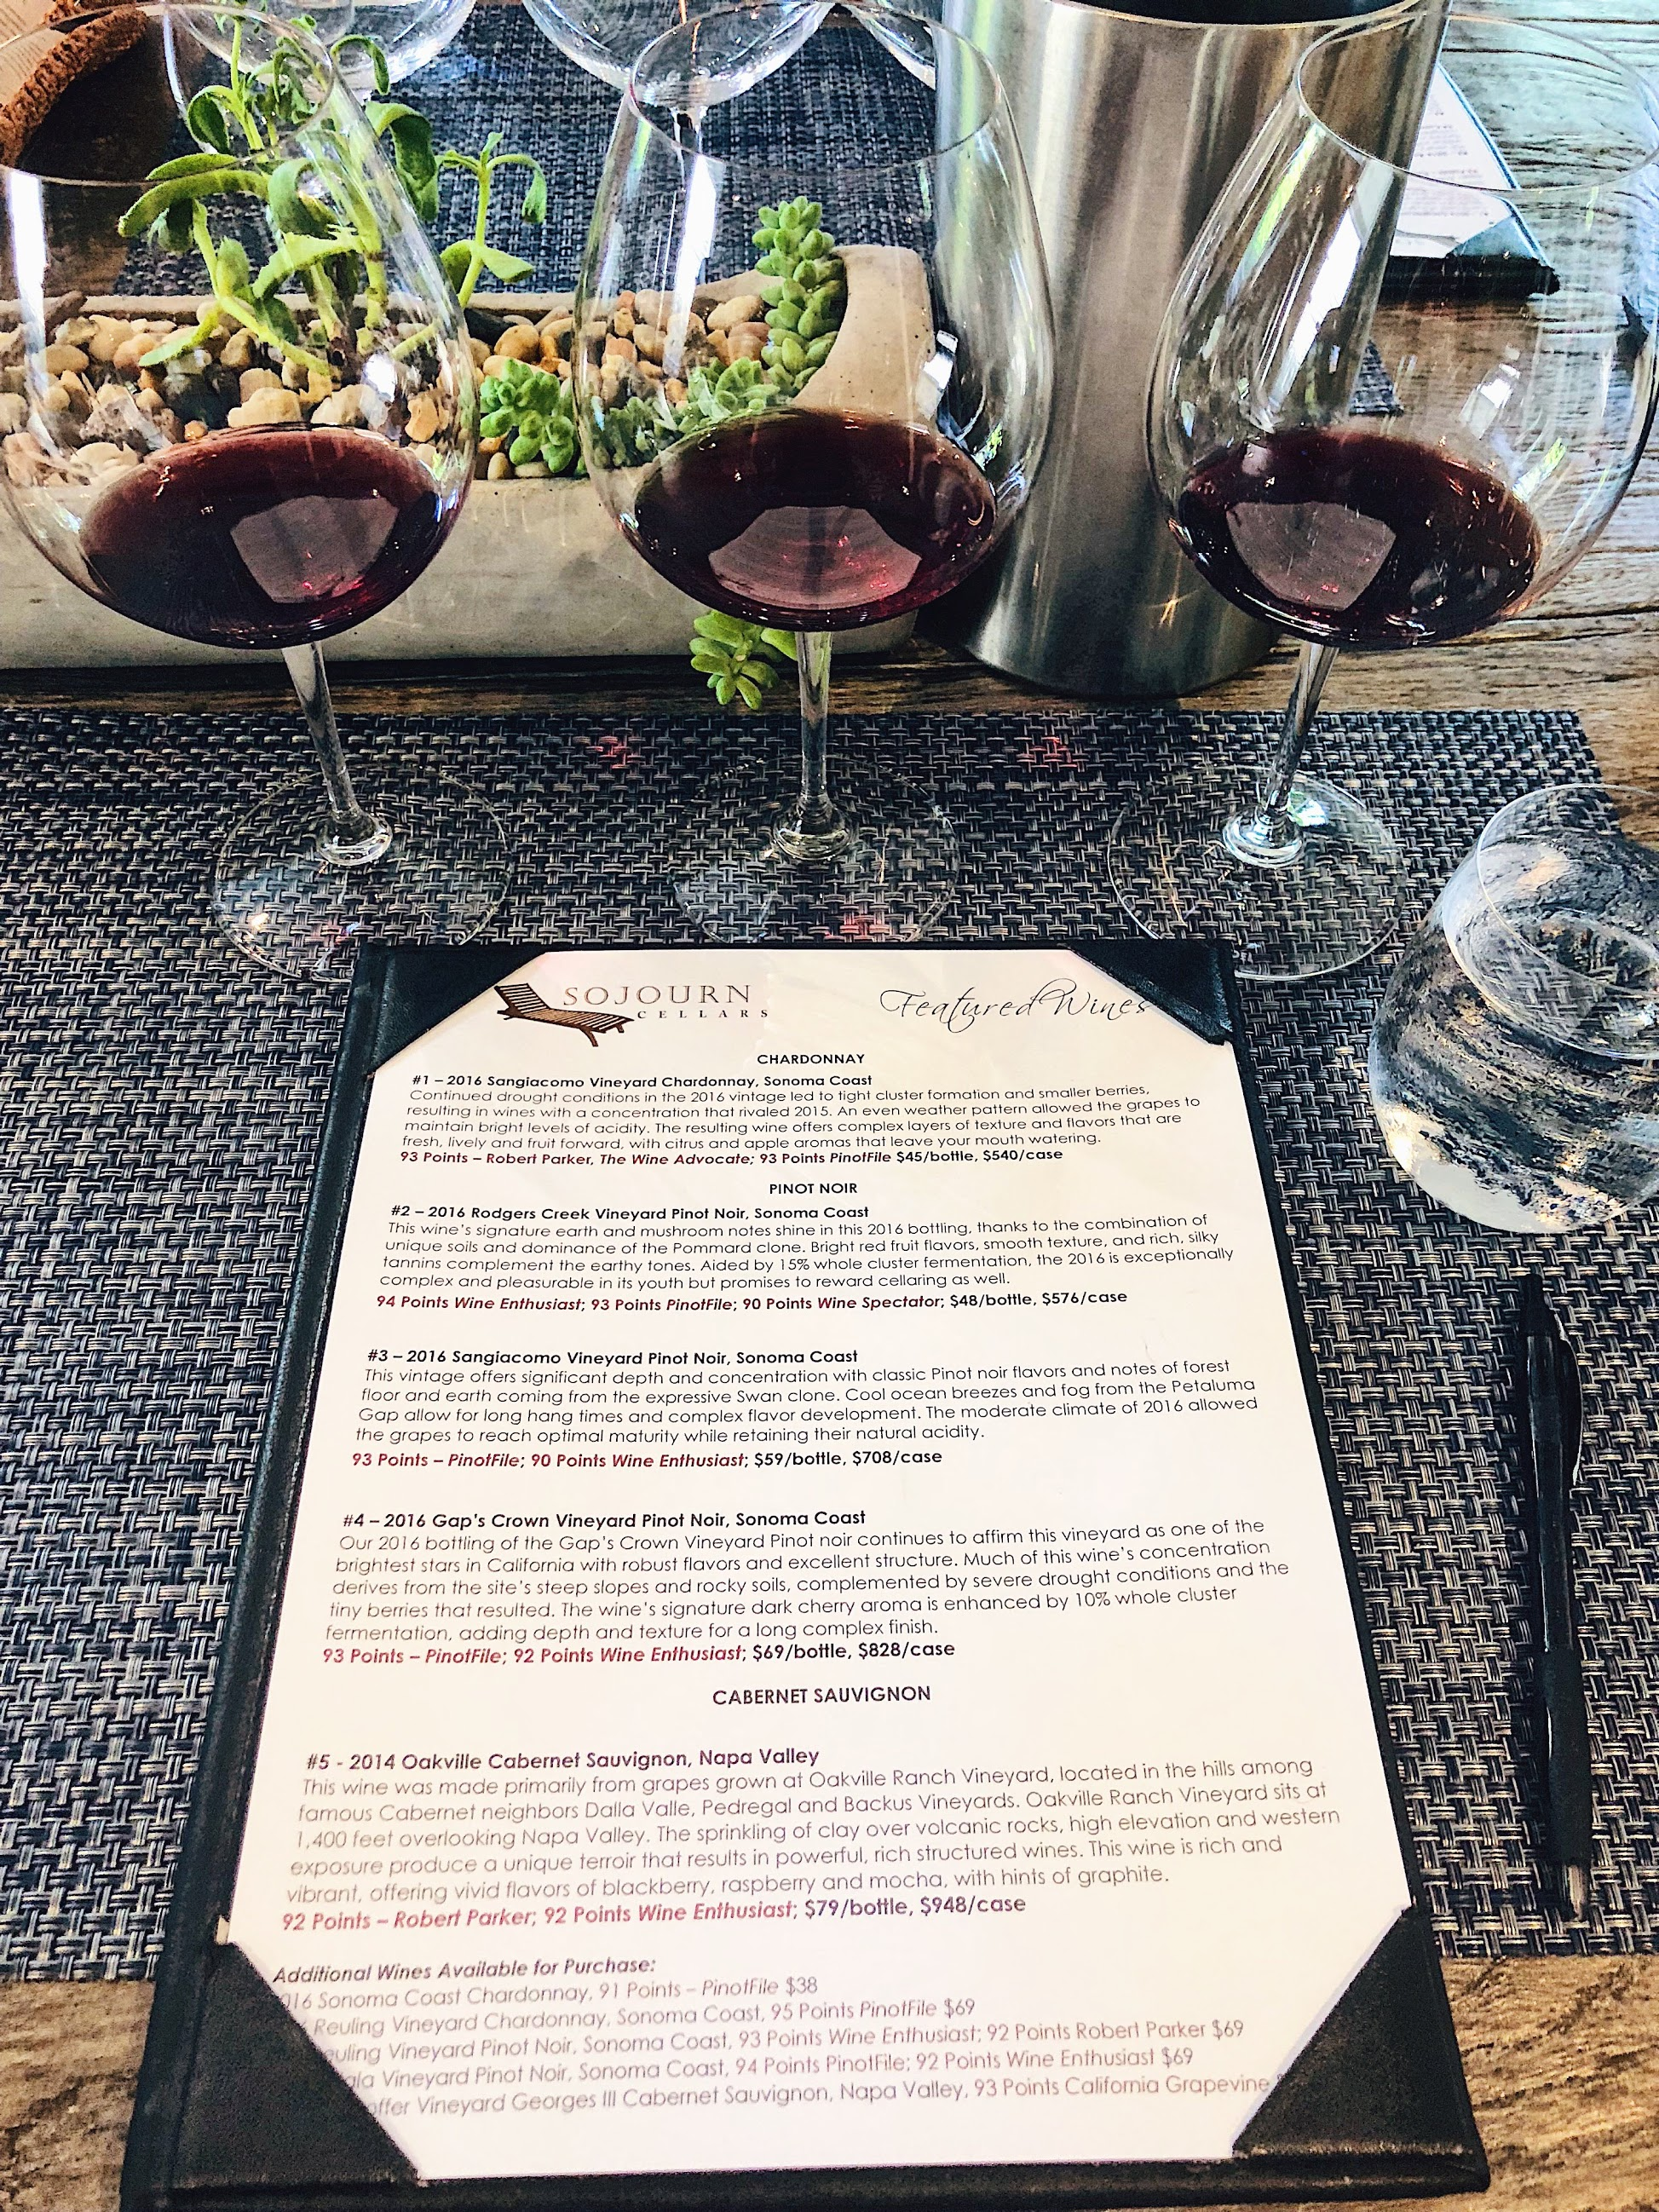 Wine Tasting At Sojourn Cellars